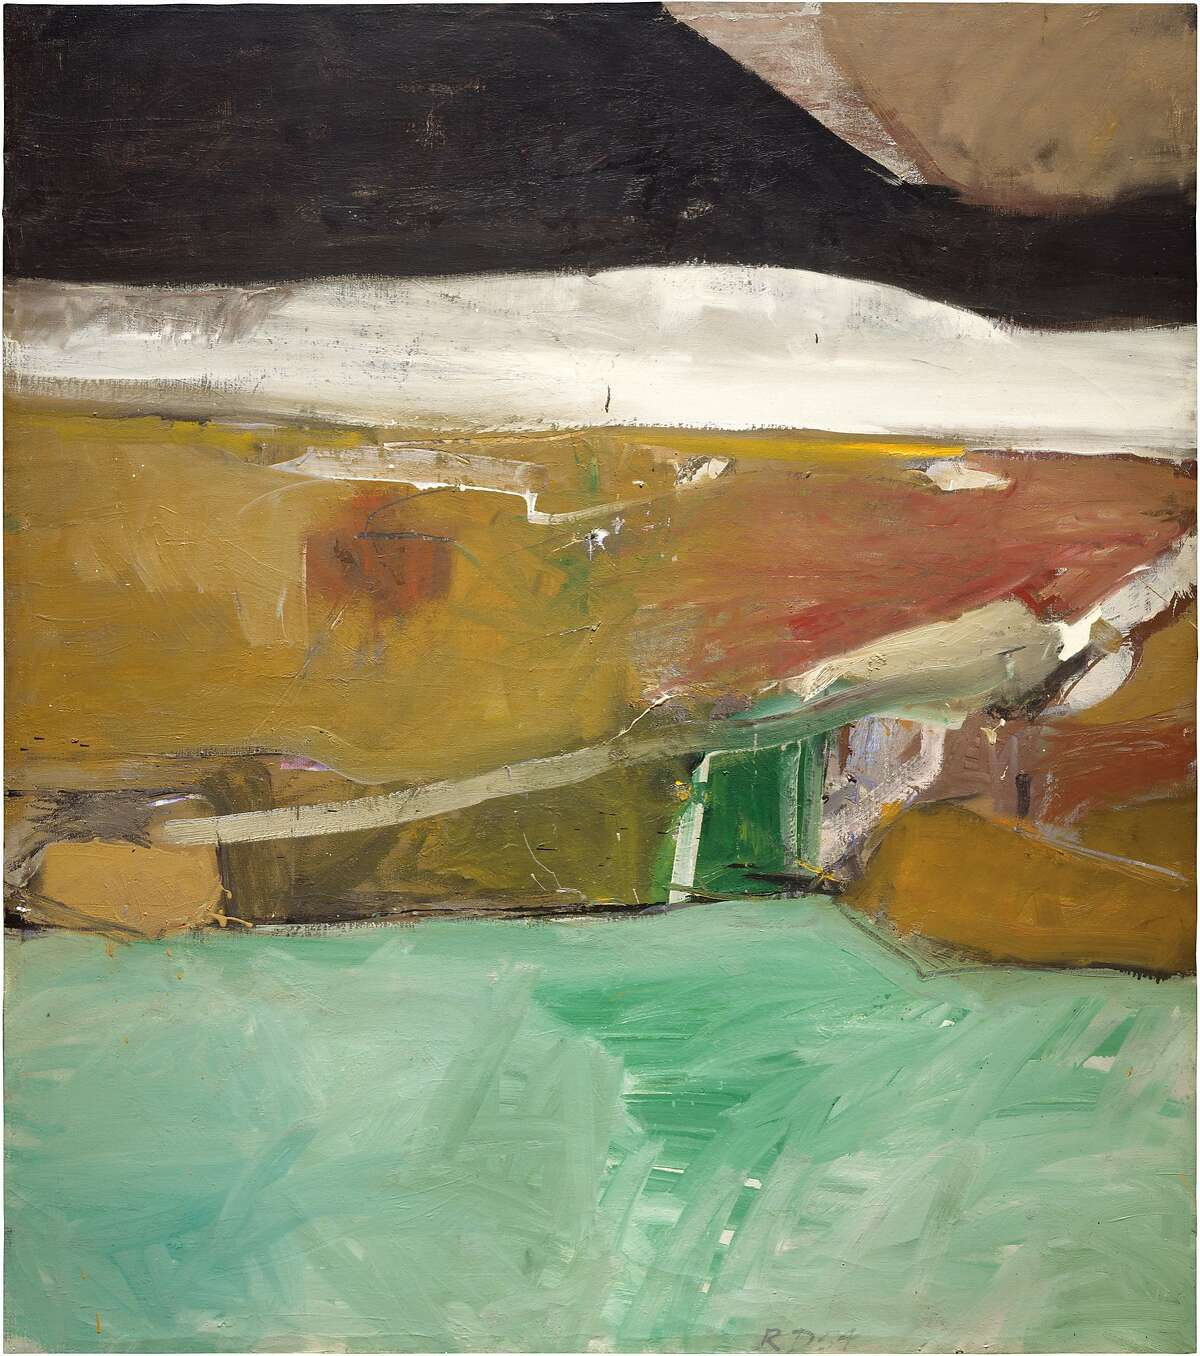 Richard Diebenkorn, Berkeley No. 26, 1954, oil on canvas. Gift of Harry W. and Mary Margaret Anderson and Mary Patricia Anderson Pence. © The Richard Diebenkorn Foundation.